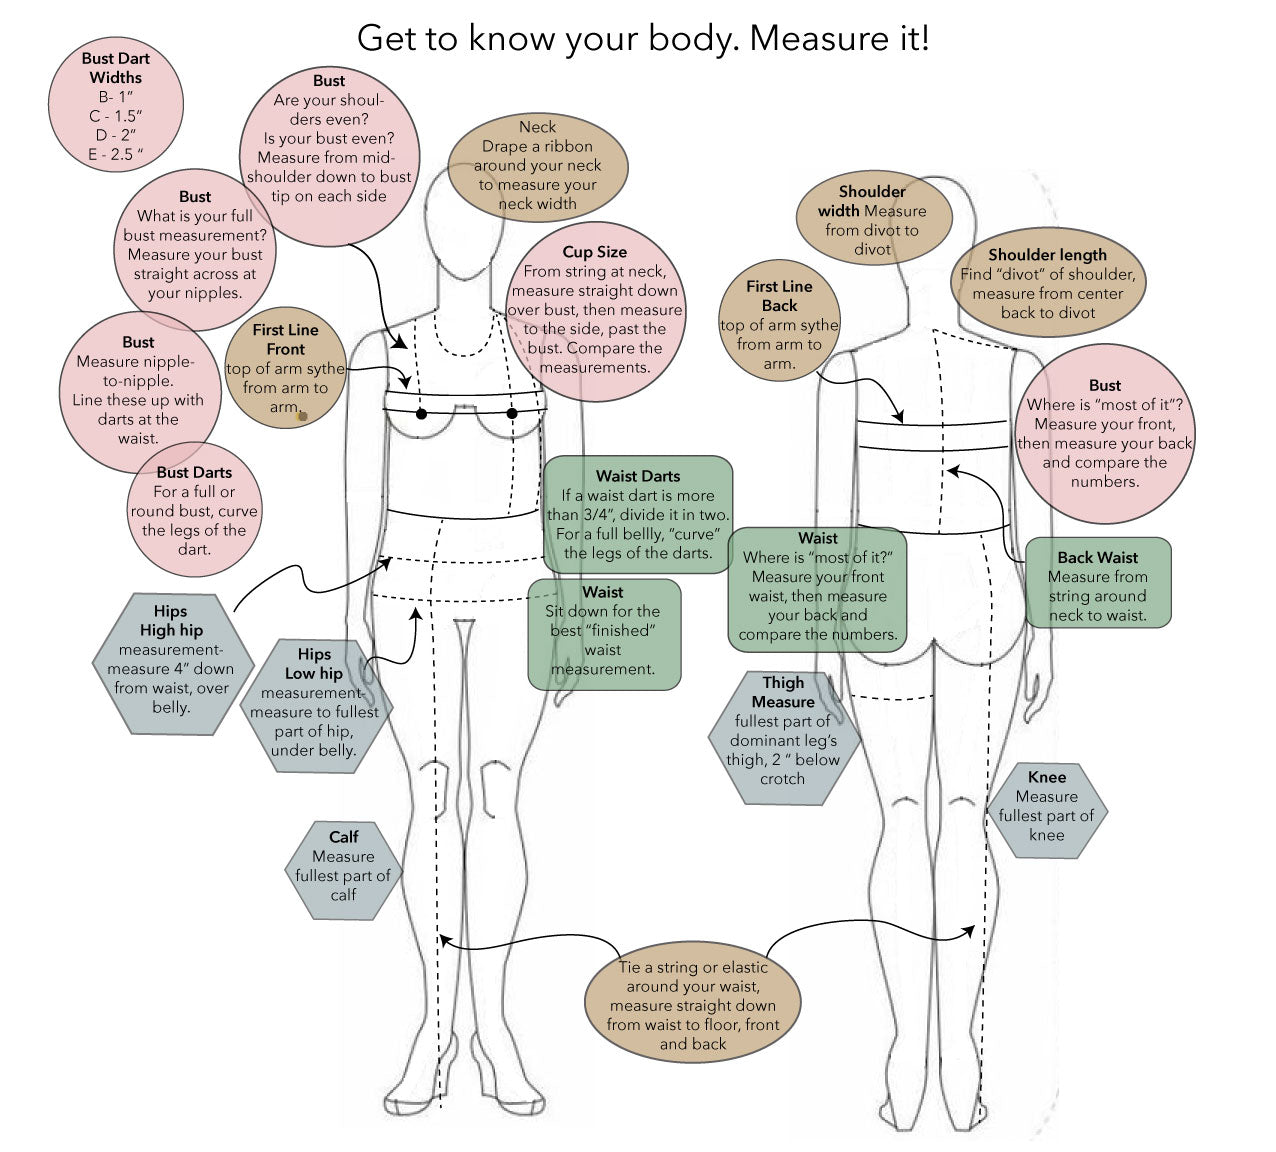 Measure your body - two croquis with measuring advice